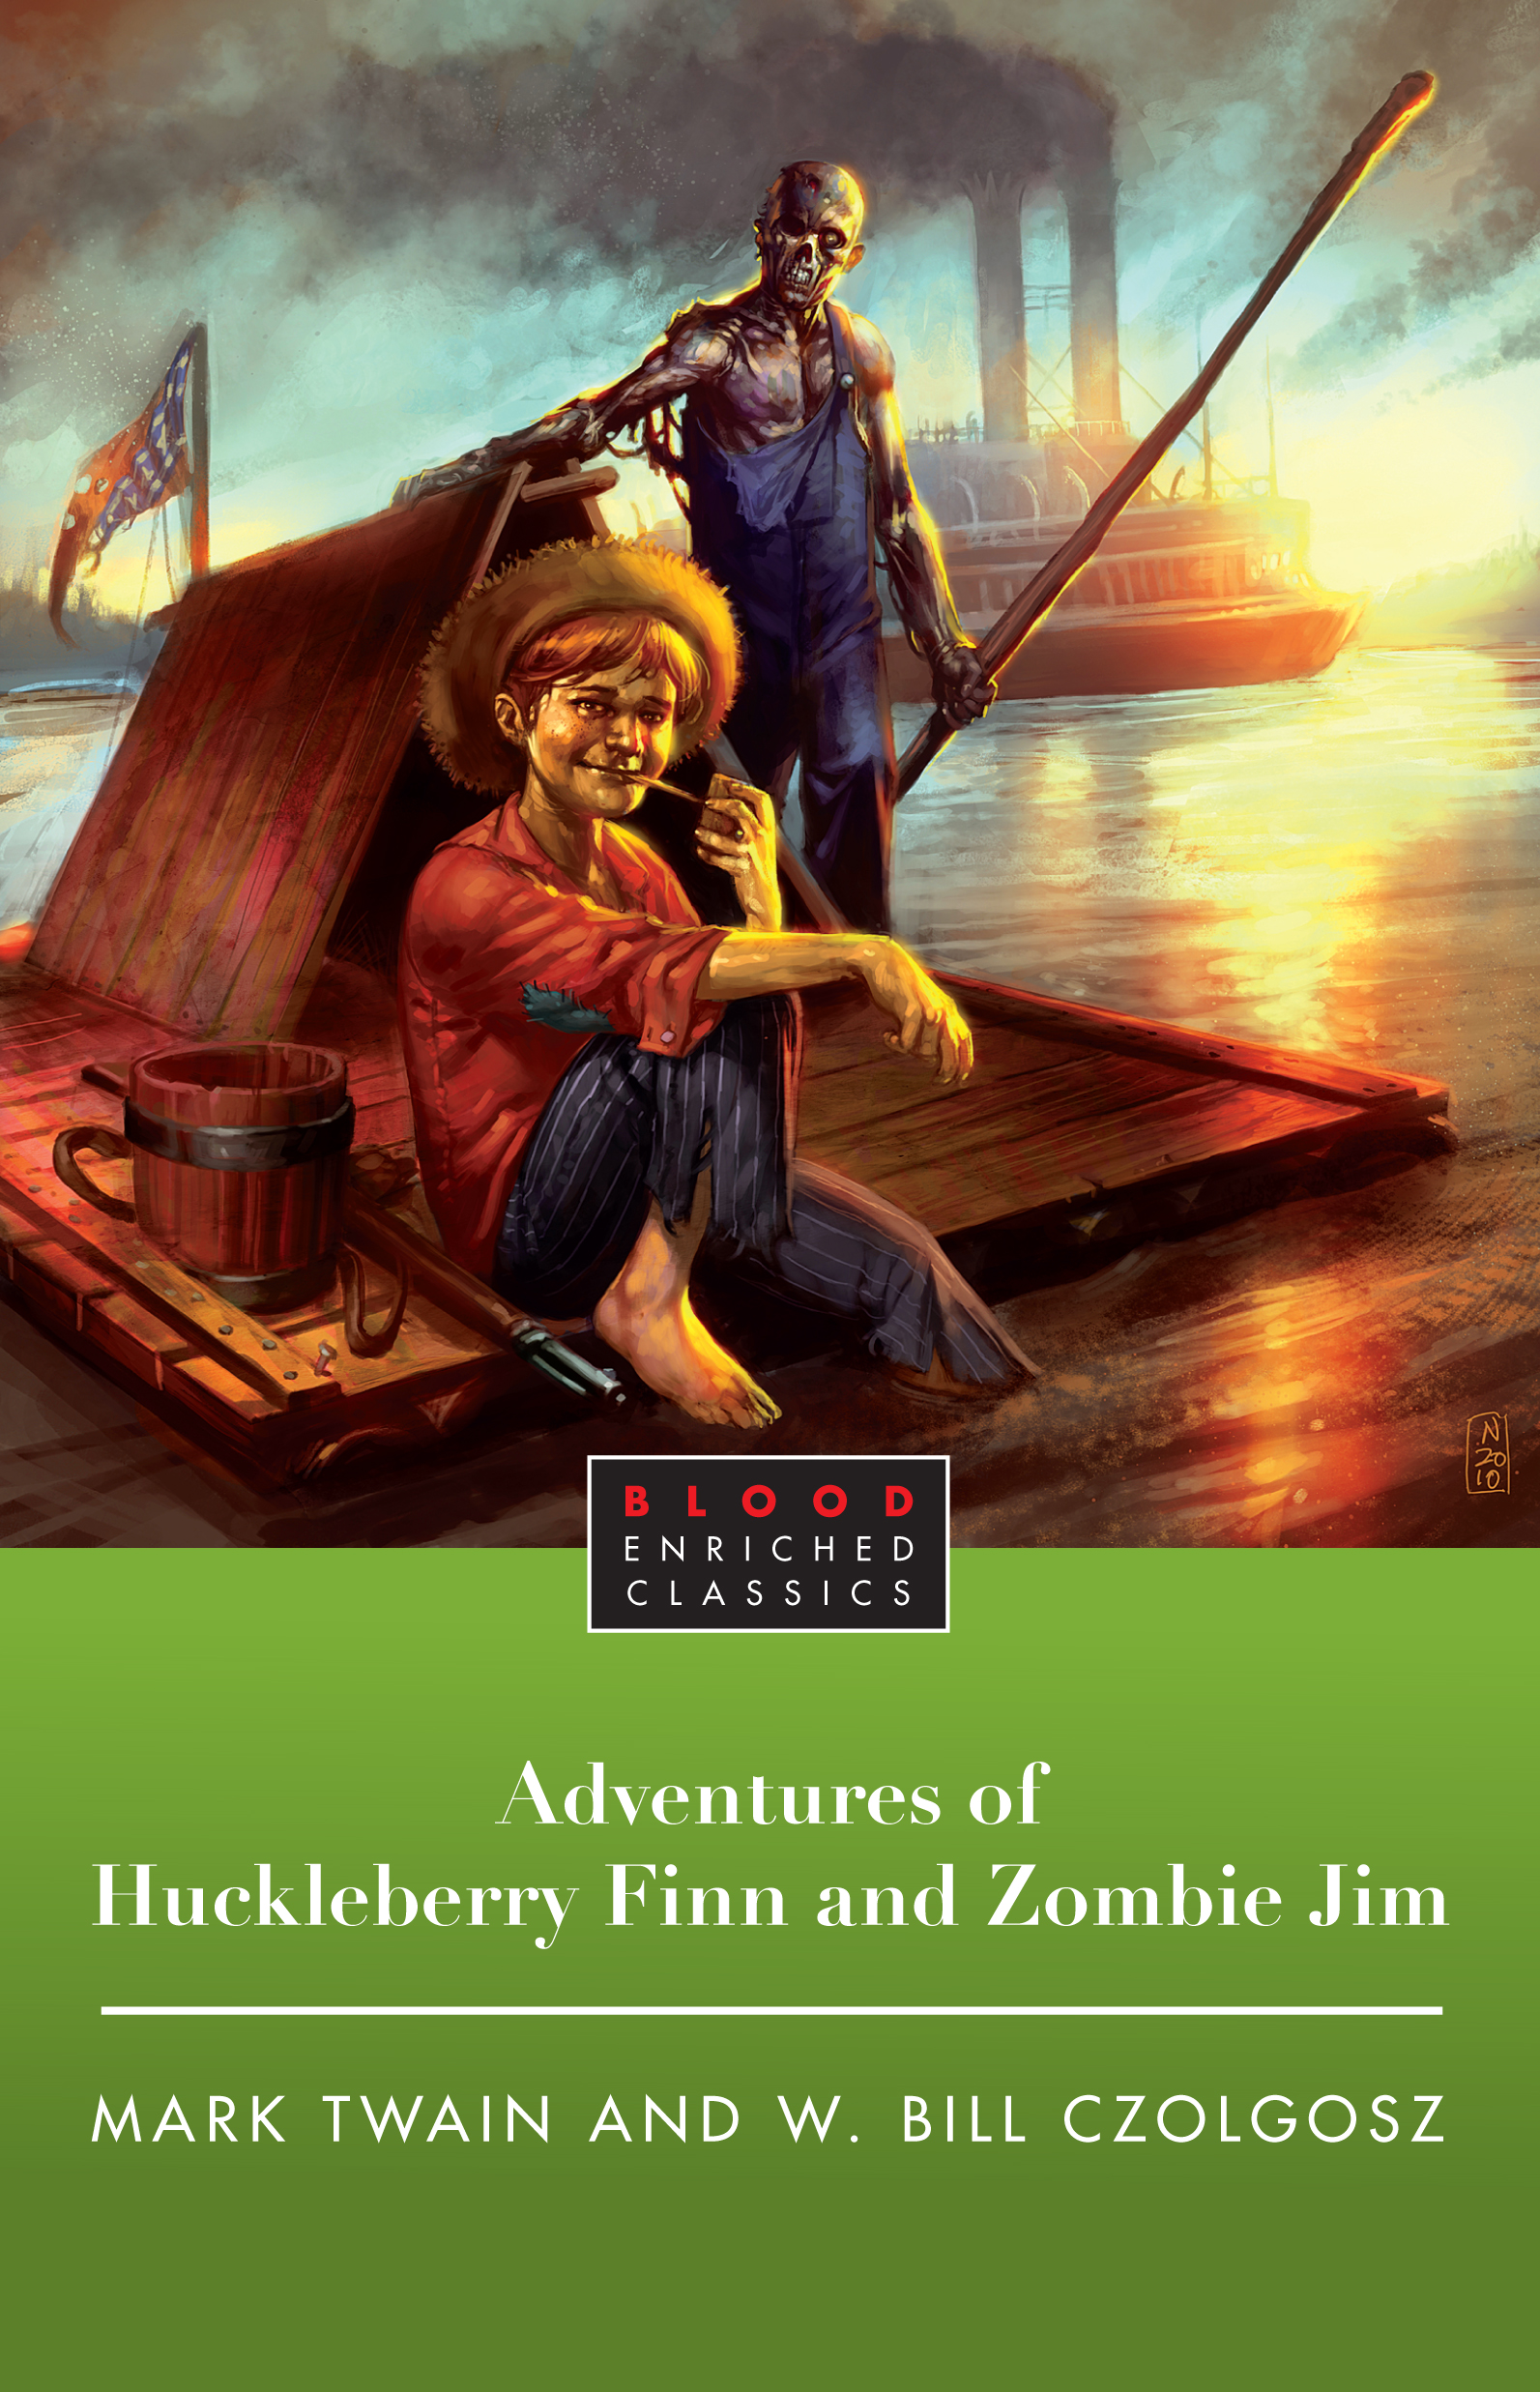 The Adventures Of Huckleberry Finn And Zombie Jim Ebook By